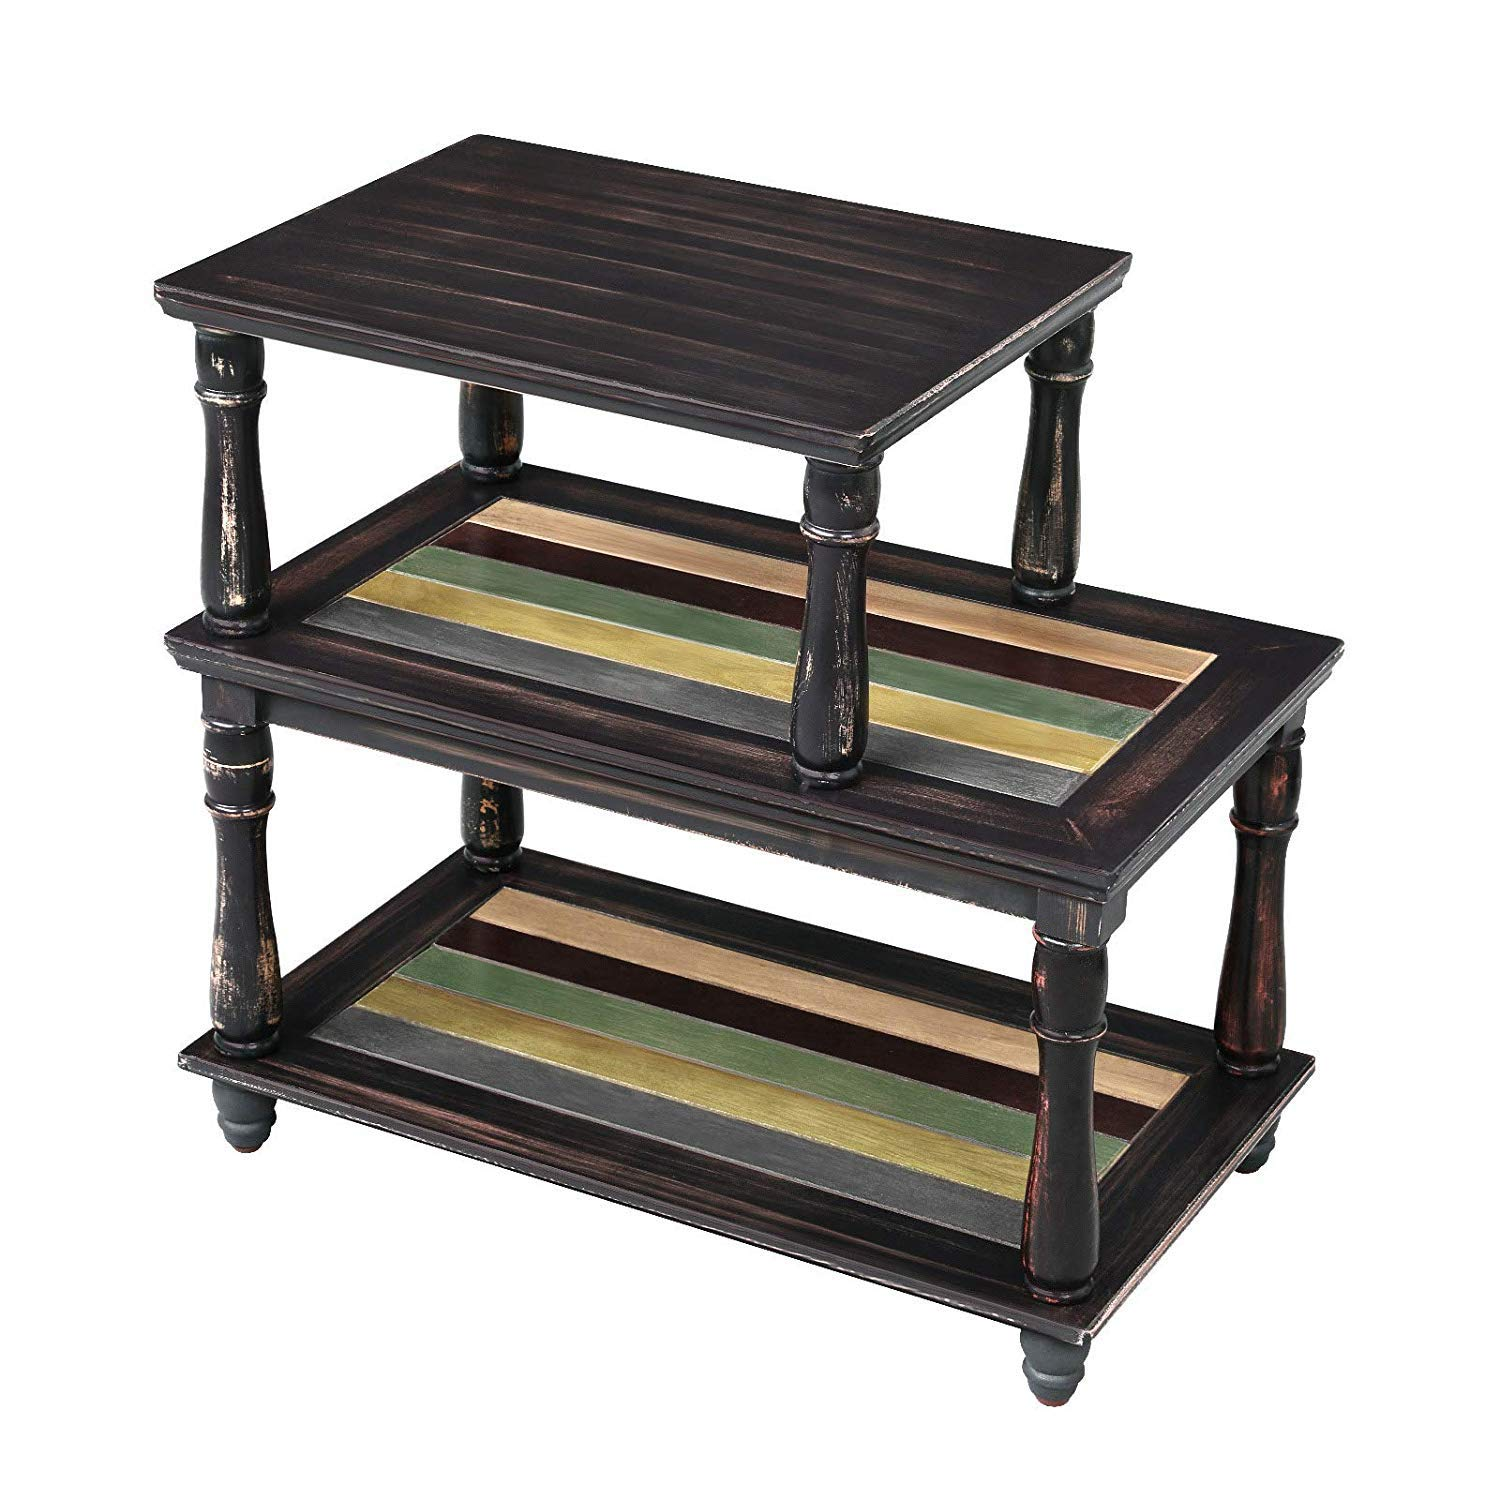 VASAGLE End Table with Colorful Storage Shelf, 3-Tier Narrow Side Table with Solid Wood Legs, Sturdy and Assembly Without Tools, Sofa Table for Living Room, Country Brown ULET18GL by VASAGLE